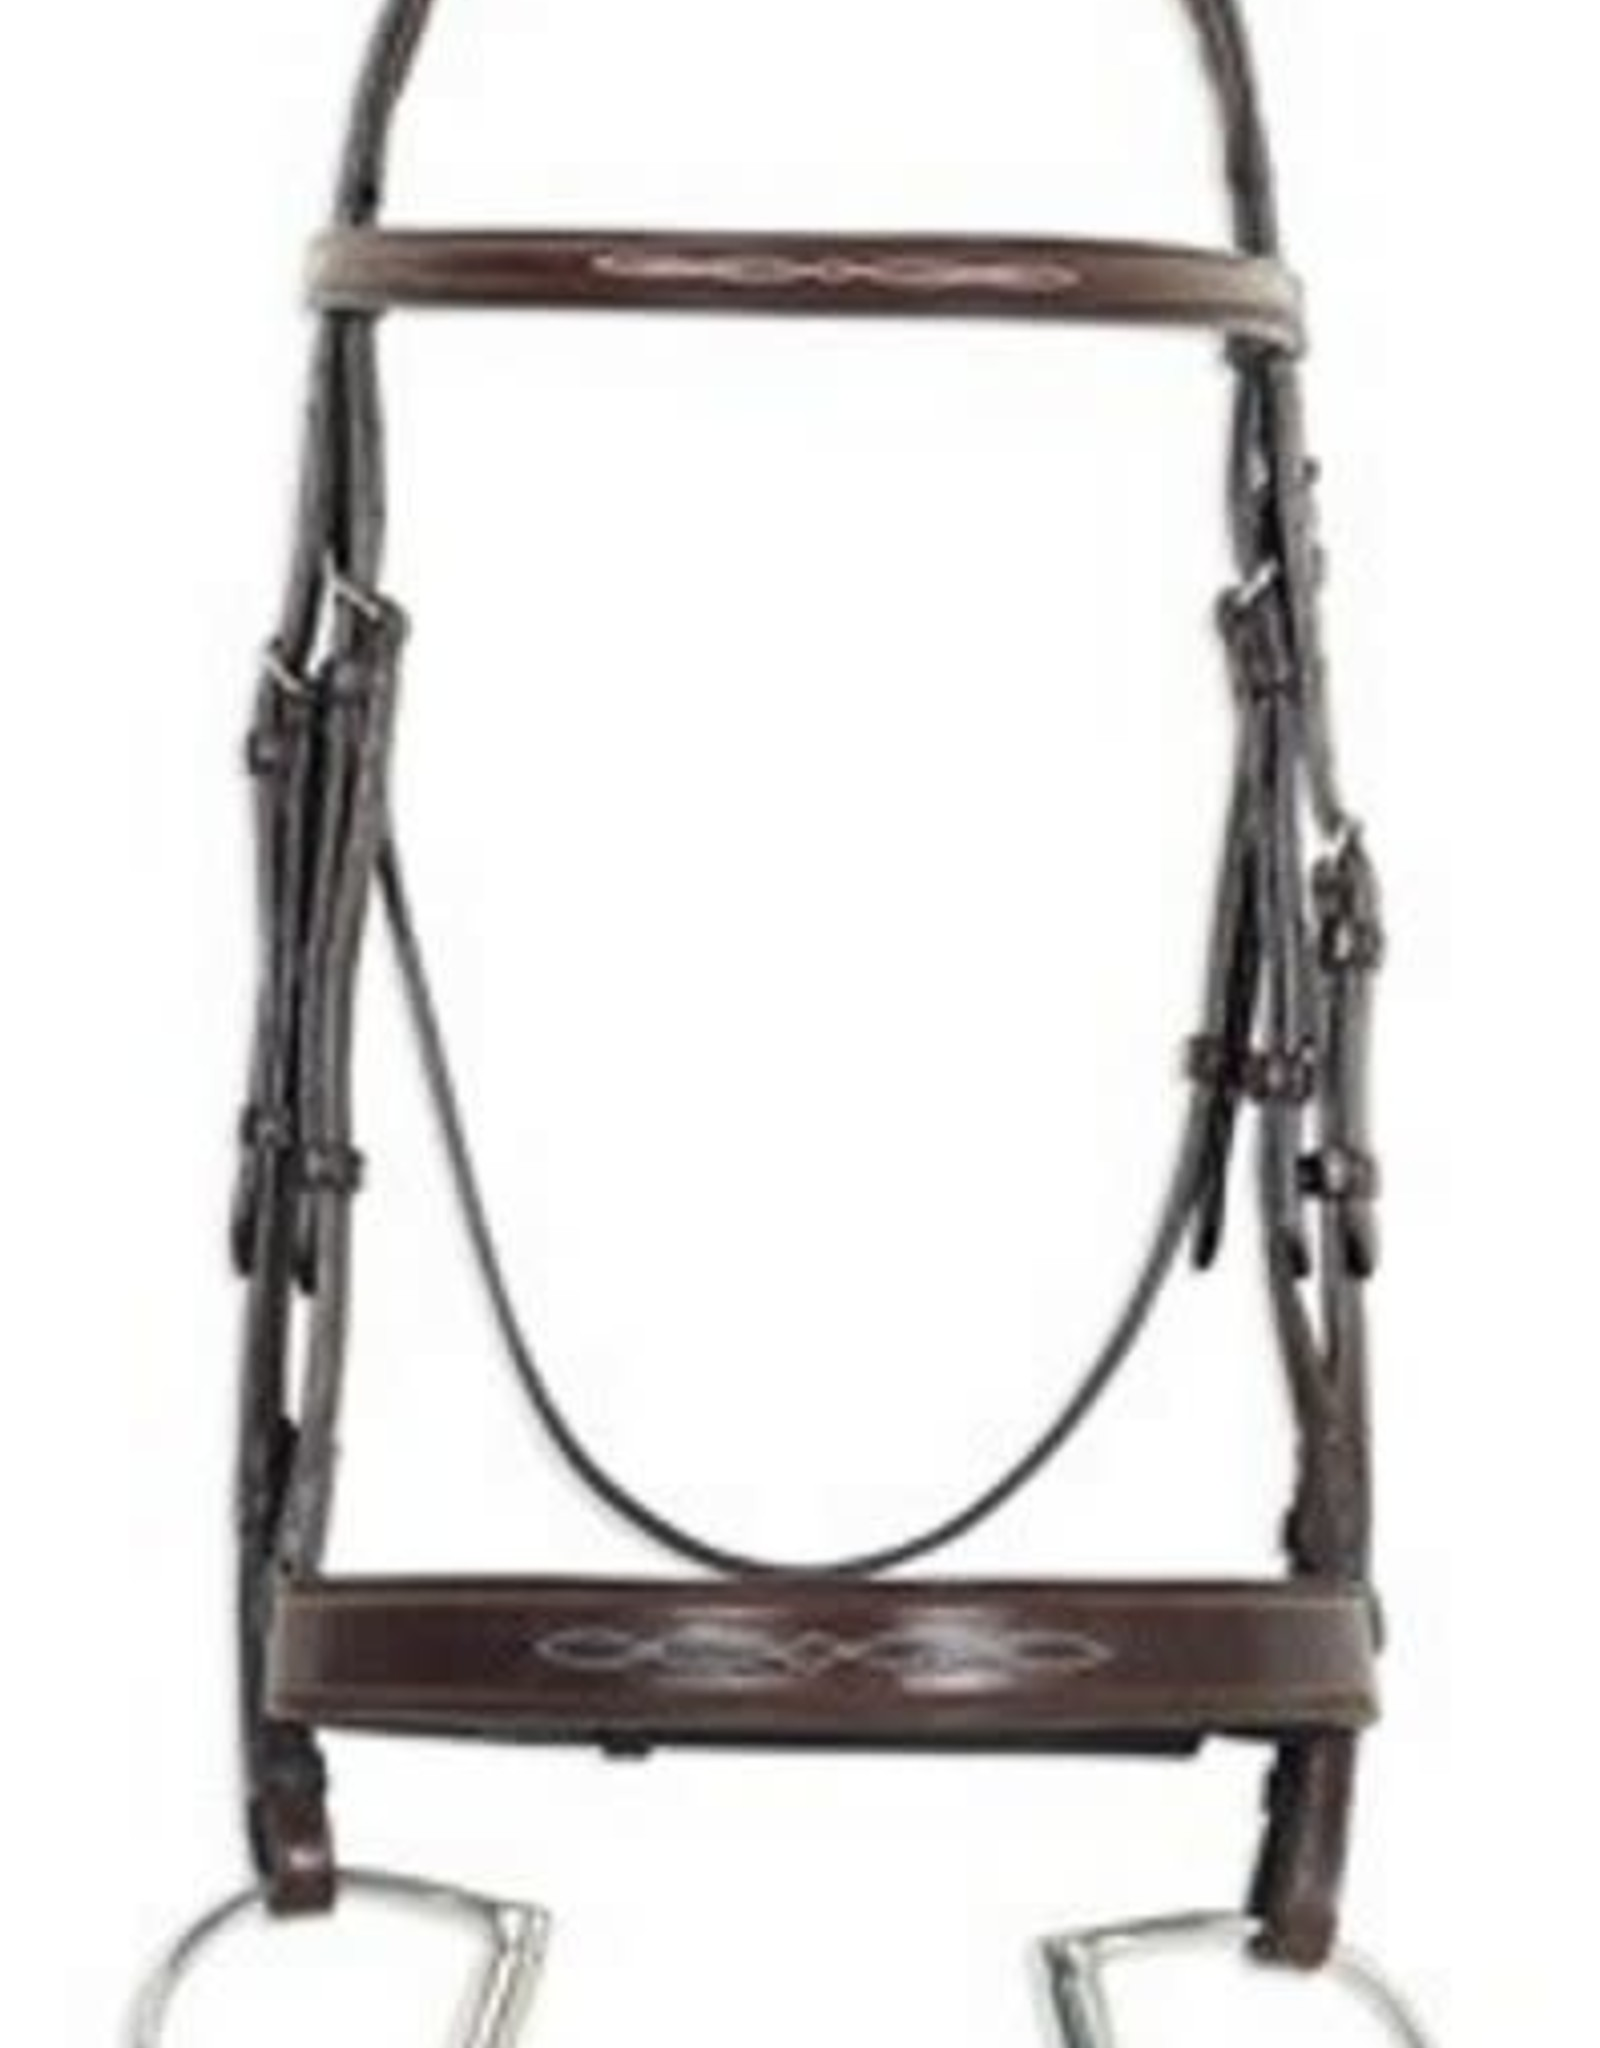 OVATION FANCY RAISED COMFORT CROWN WIDE NOSEBAND BRIDLE WITH FANCY RAISED LACED REINS